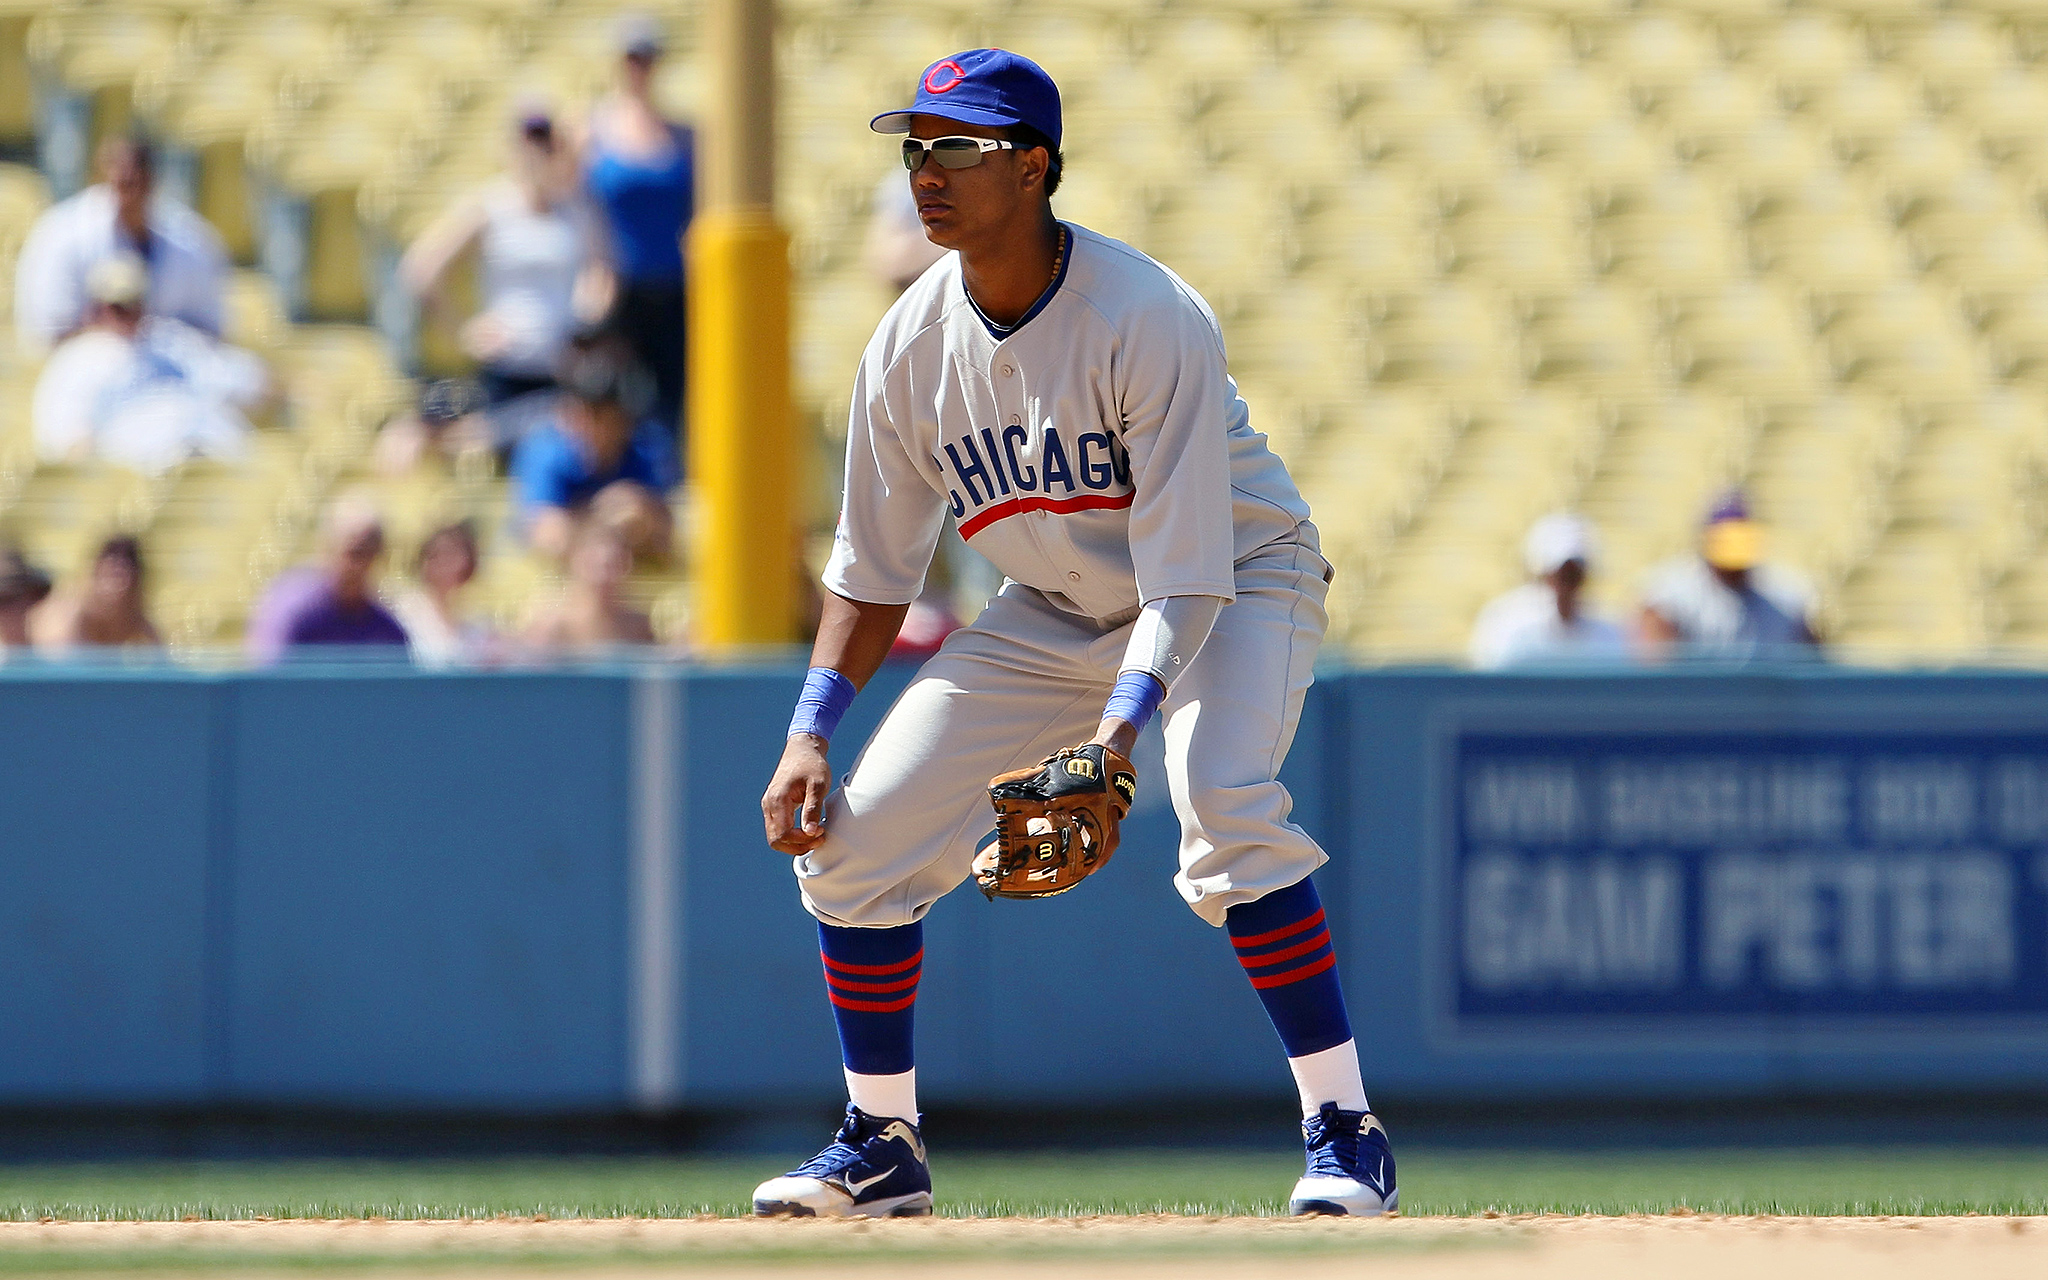 new style d4ced 75c9f Chicago Cubs (2011) - Throwback Uniforms - ESPN